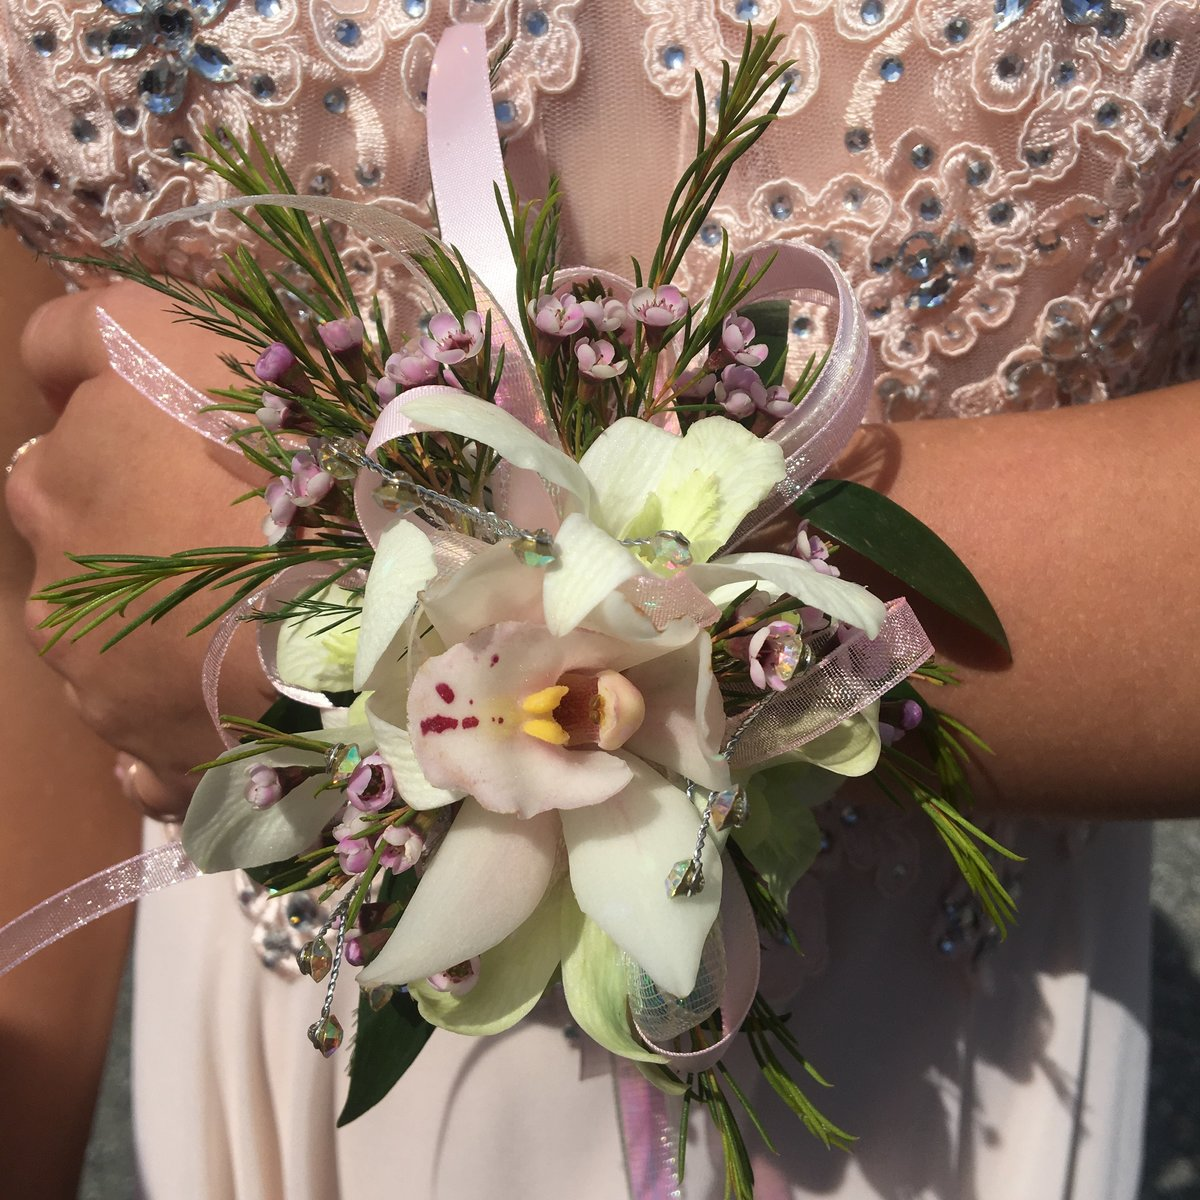 Courtney Cymbidium wrist corsage 2018